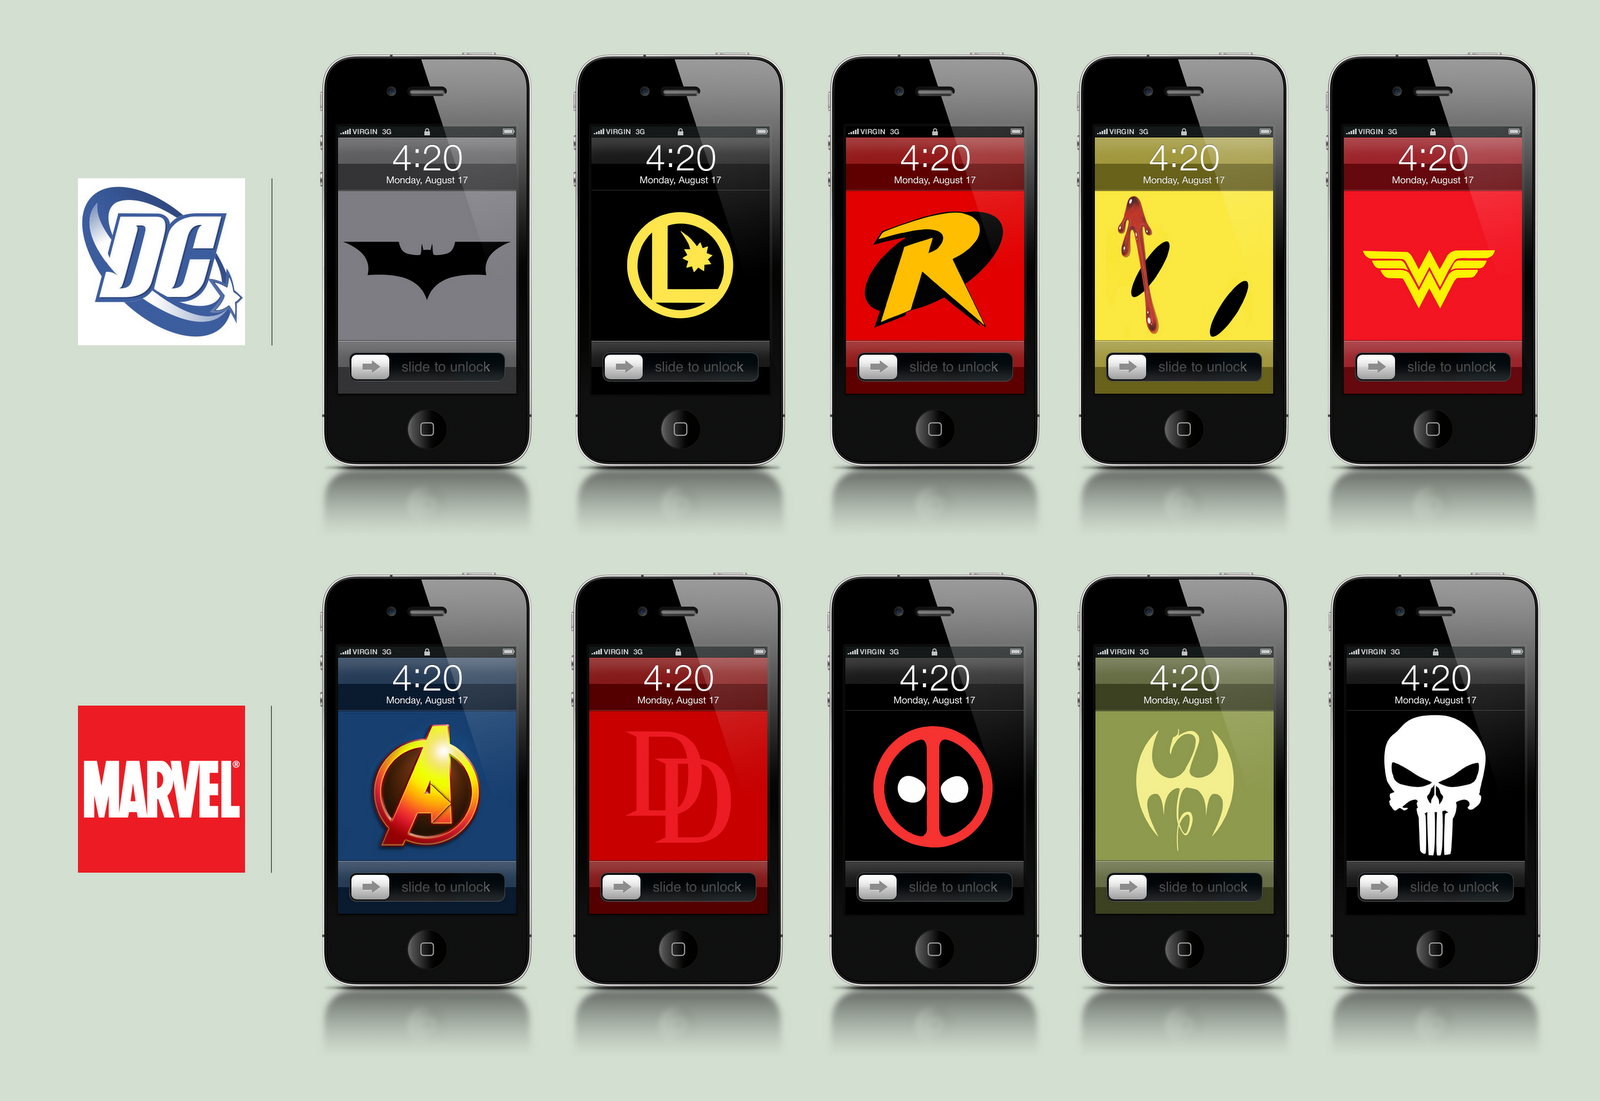 370 Wallpapers Para Iphone: 4 Paquetes Con +35 Wallpapers De Comics Para IPhone